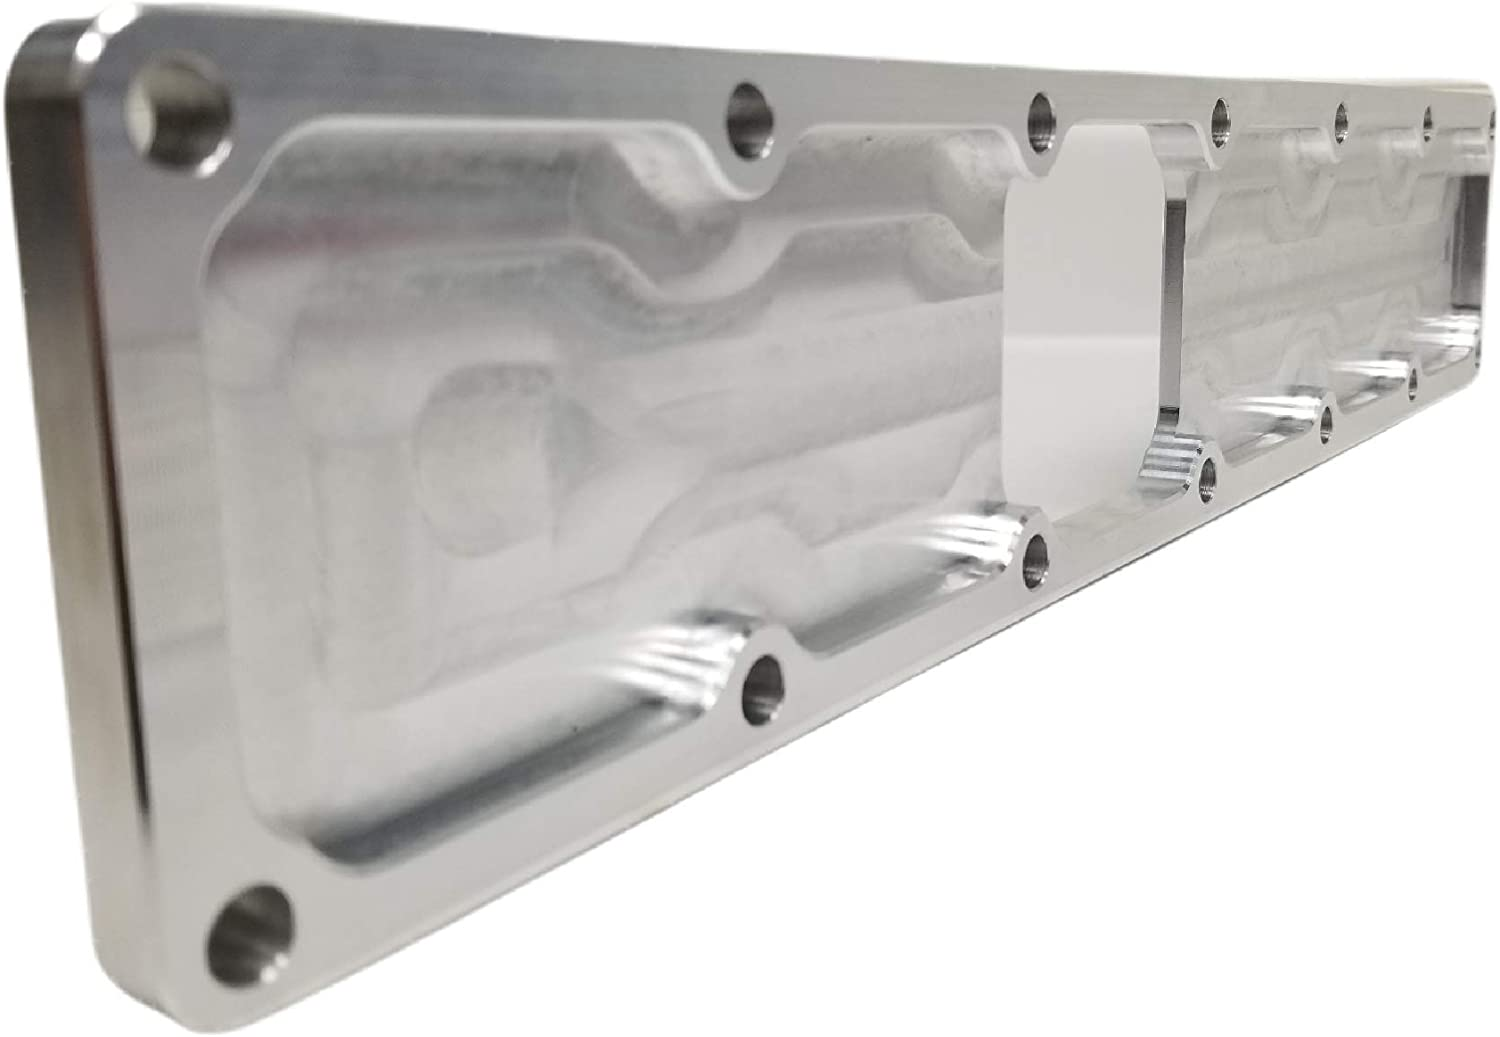 Z Whip Billet Aluminum Intake Manifold Plenum Plate Compatible With Dodge Ram Cummins 5.9L 12 Valve 6BT engines Proudly Made In The USA